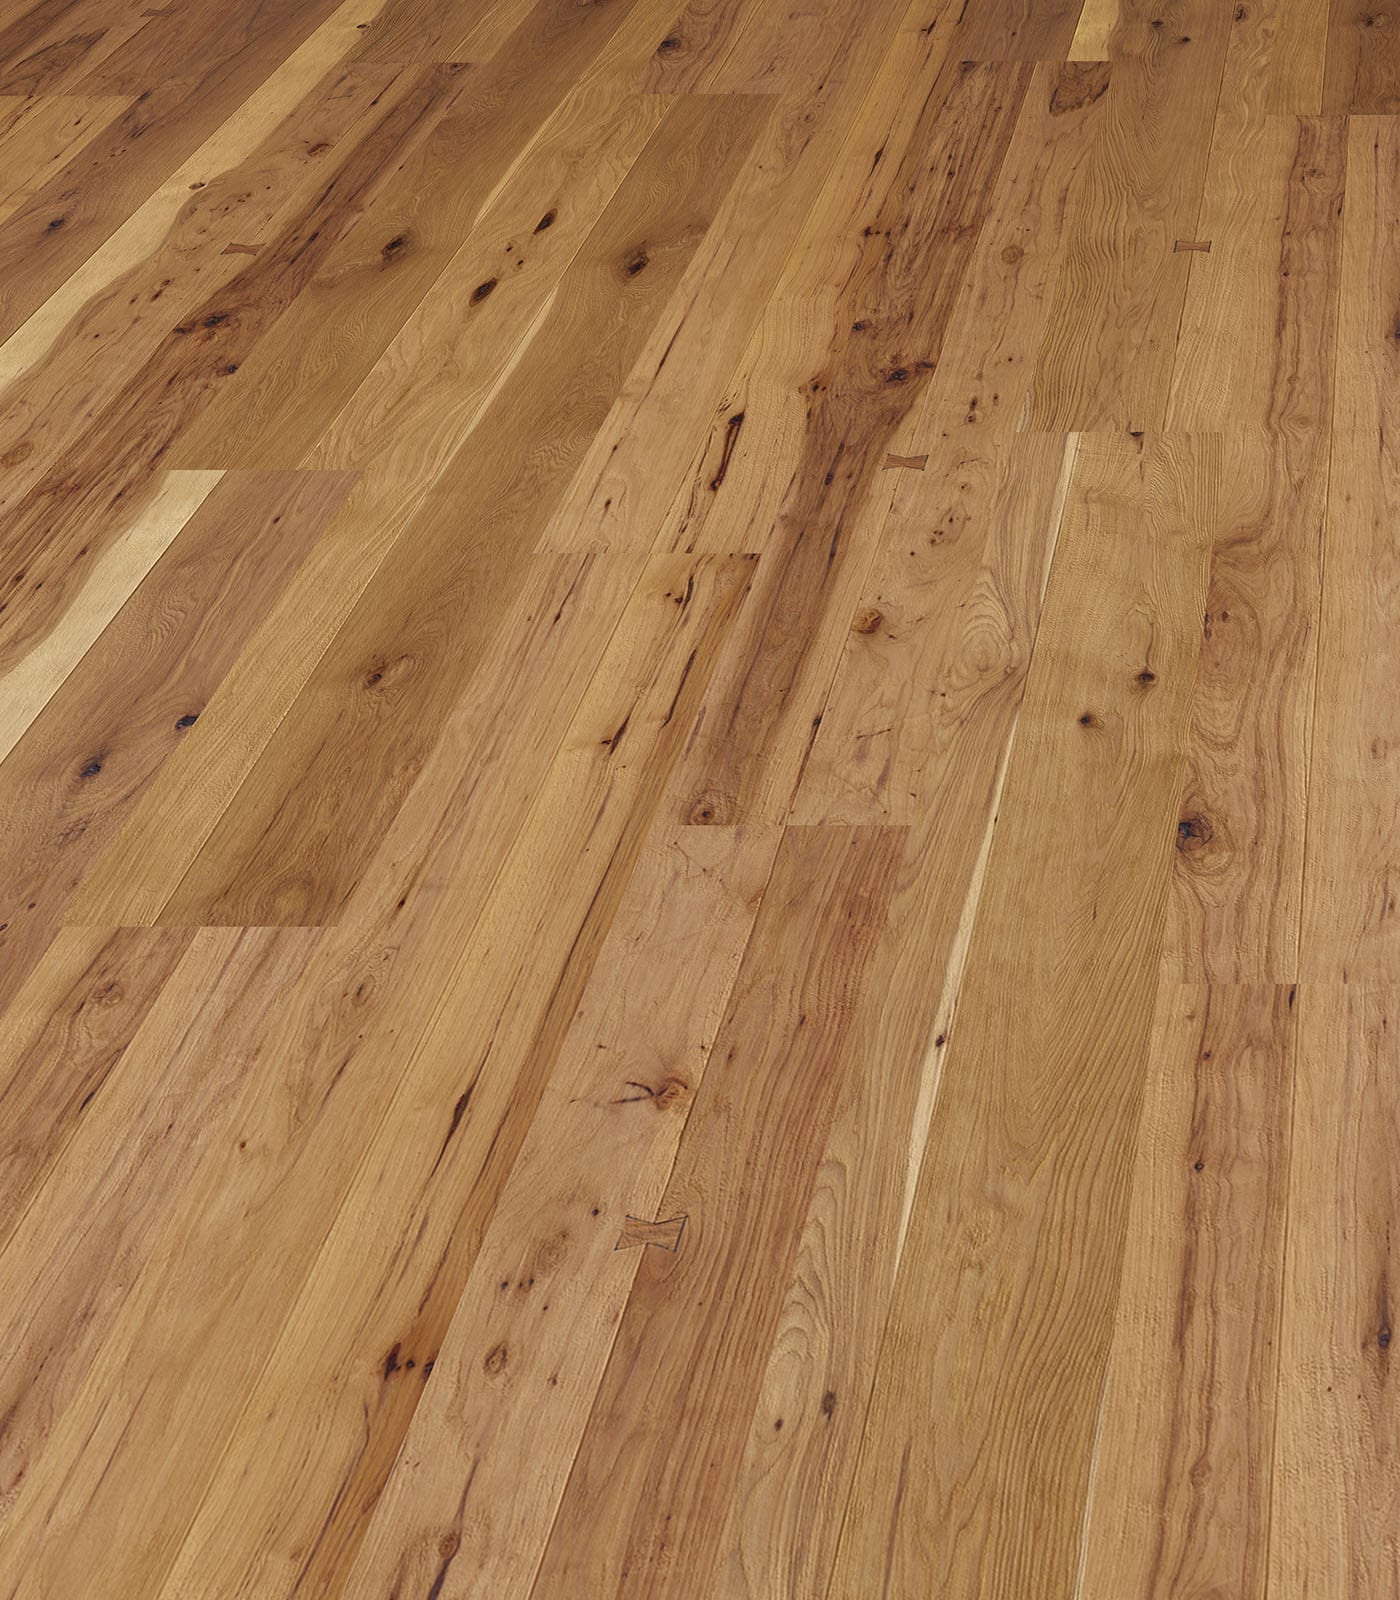 Chambord-Heritage Collection-Pecan engineered floors-angle